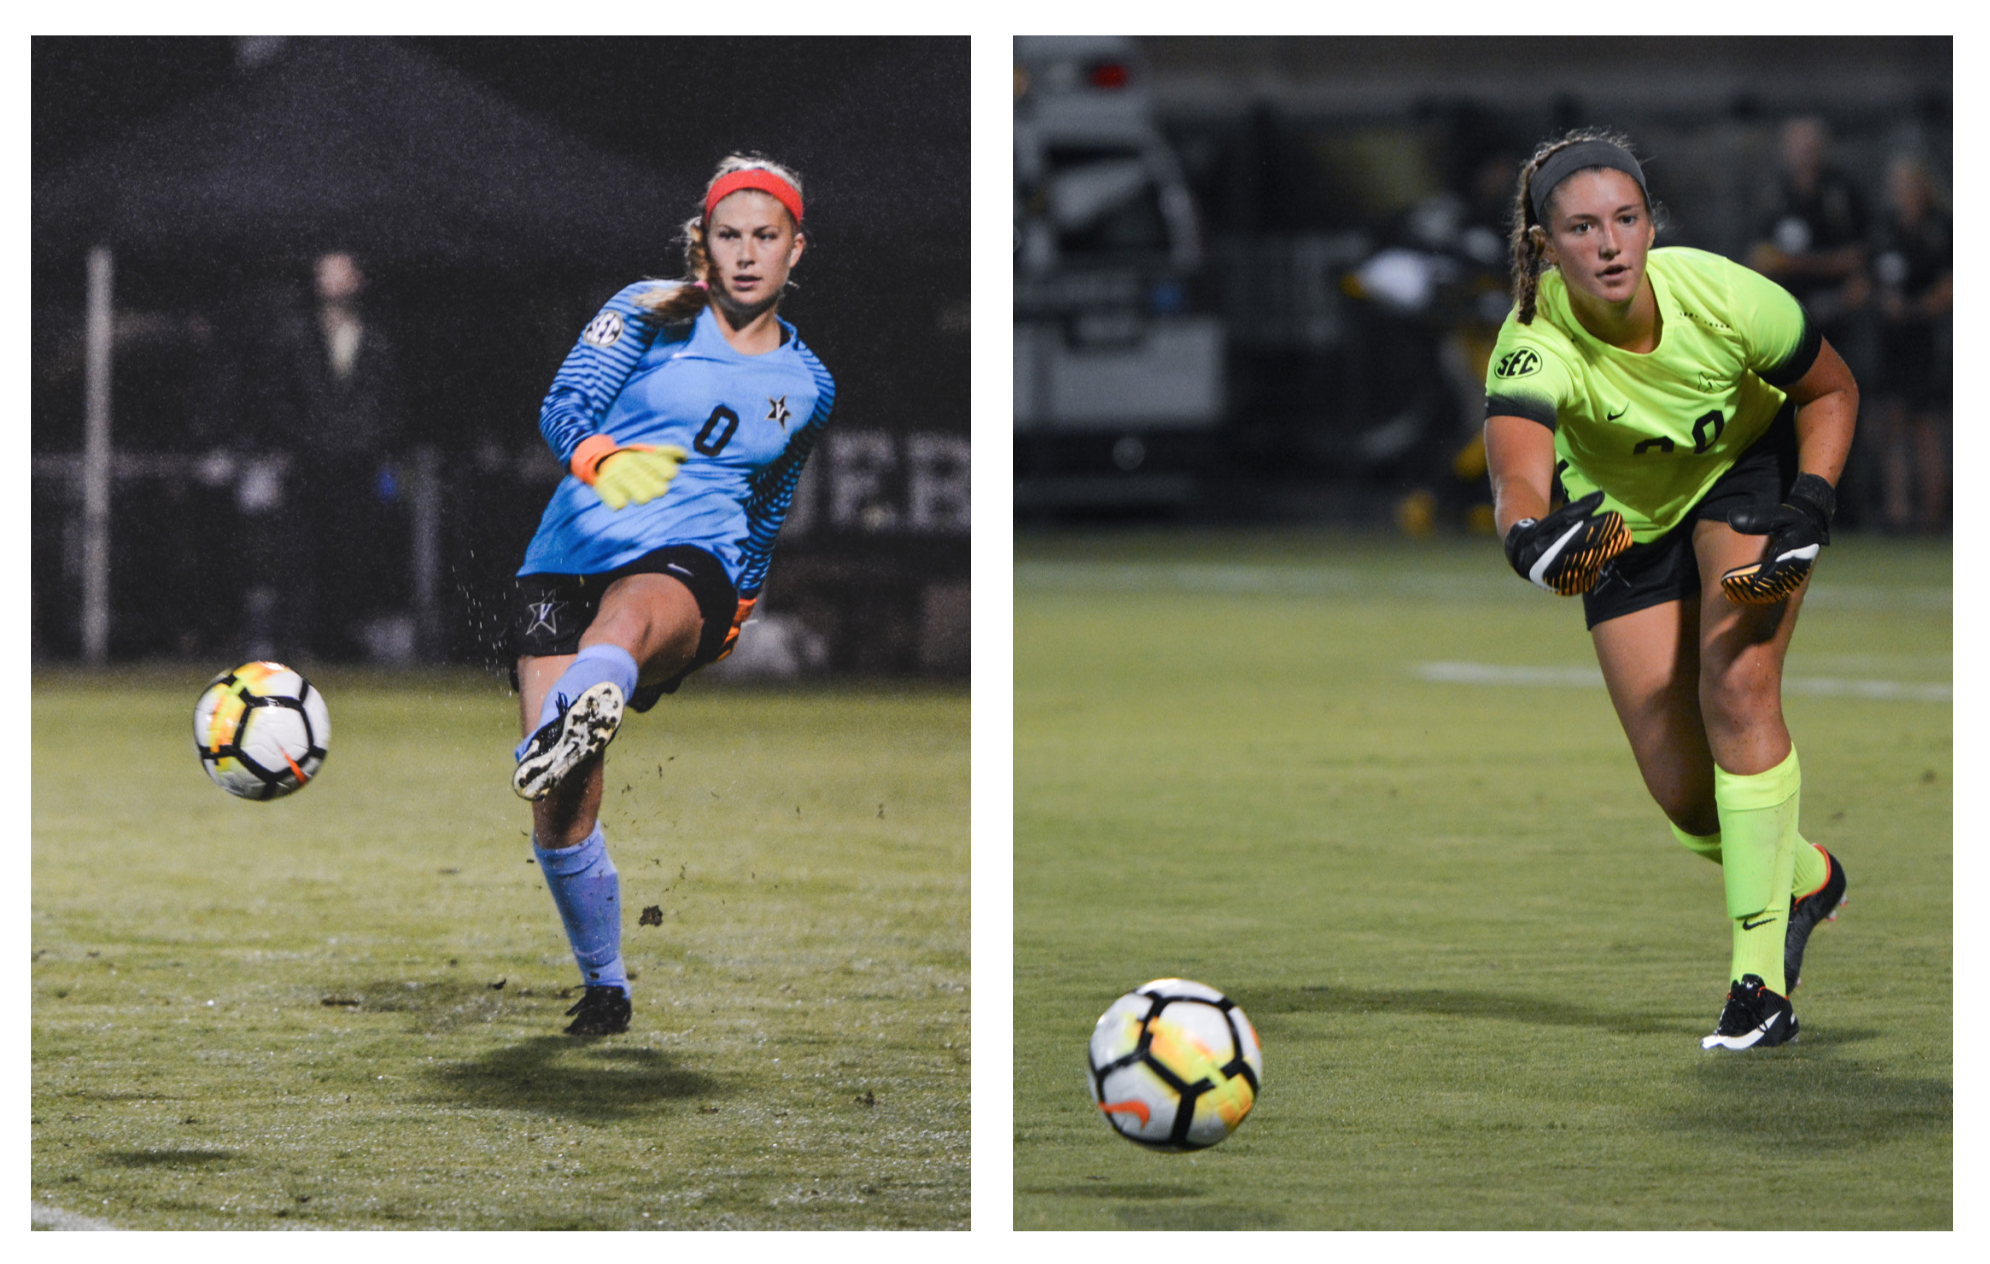 Goalkeepers Kaitlyn Fahrner and Taiana Tolleson are part of a skilled group of goalkeepers for Vanderbilt.